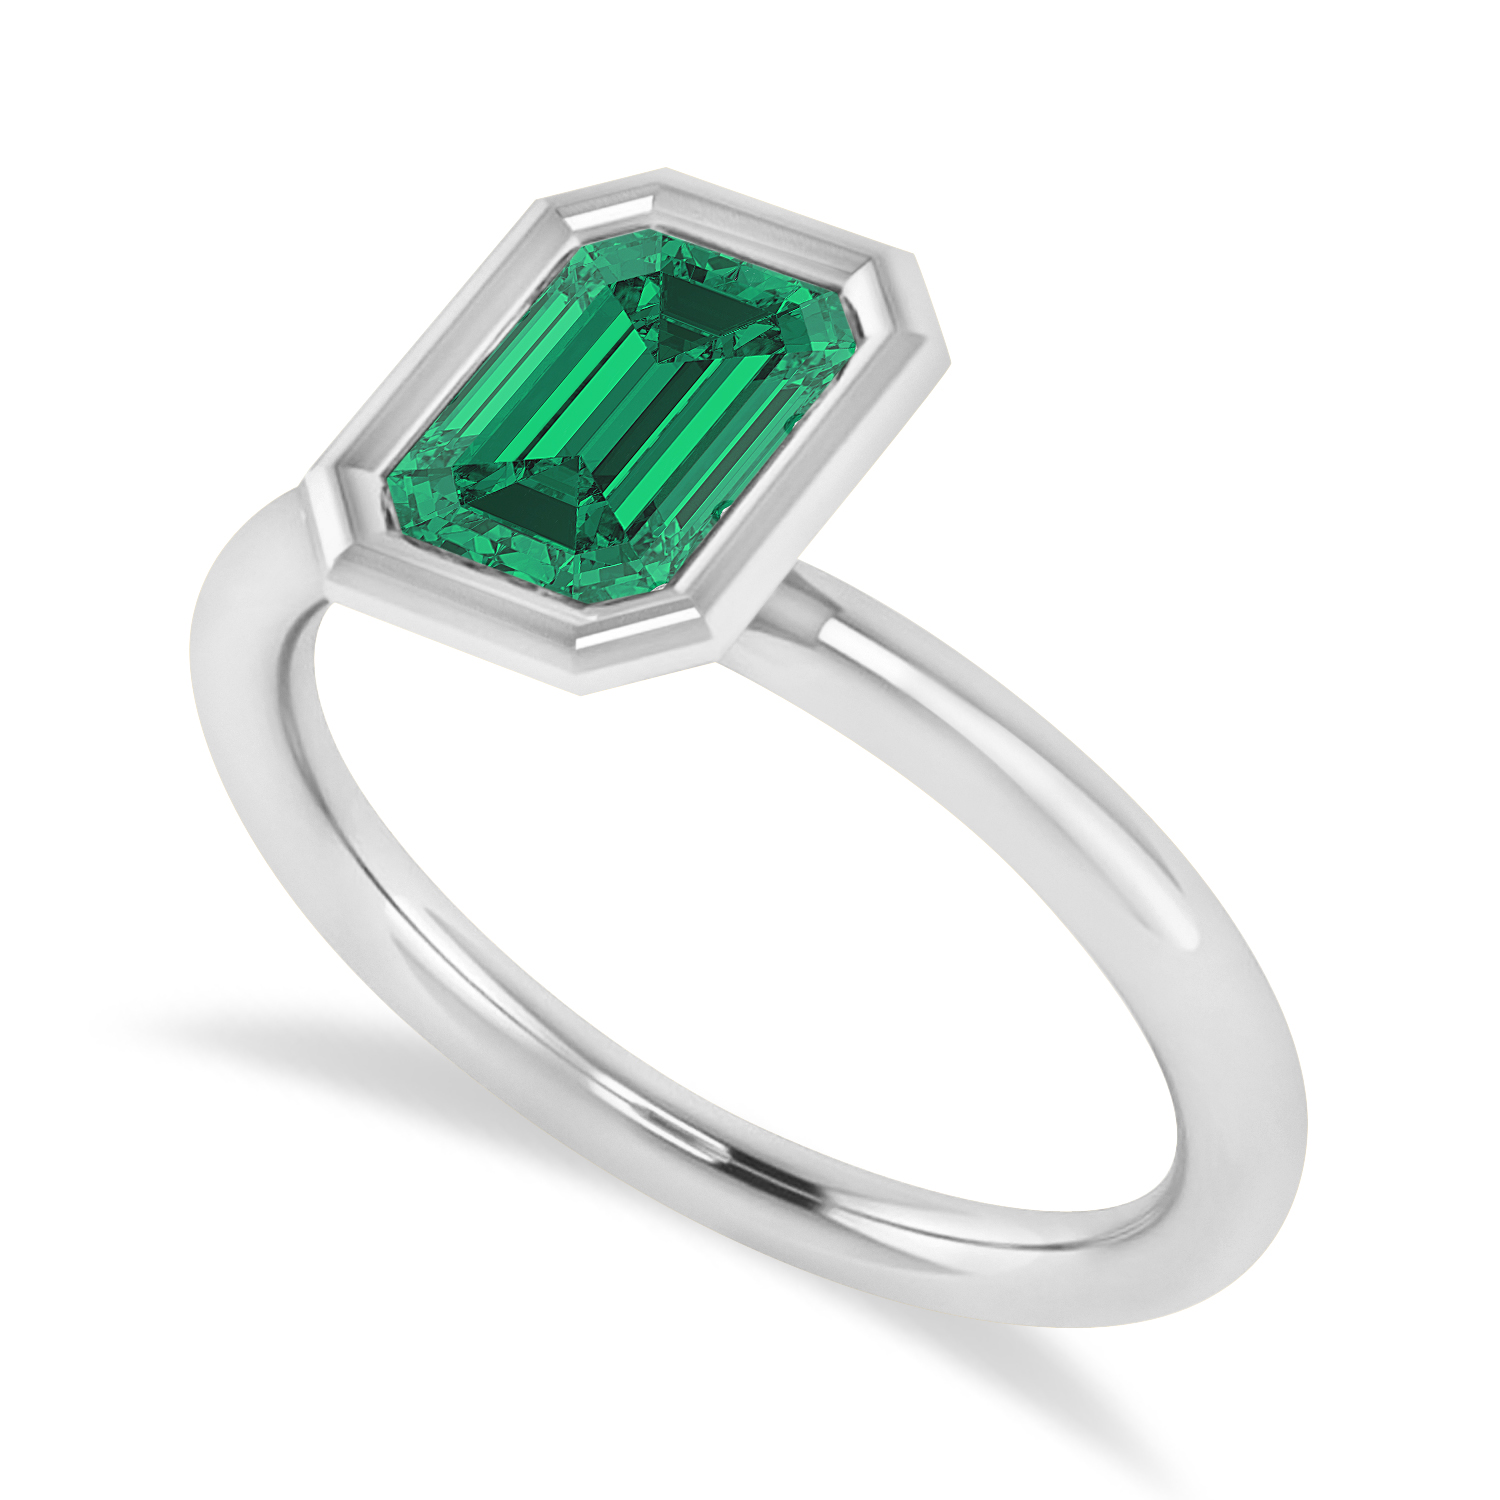 Emerald-Cut Bezel-Set Emerald Solitaire Ring 14k White Gold (1.00 ctw)